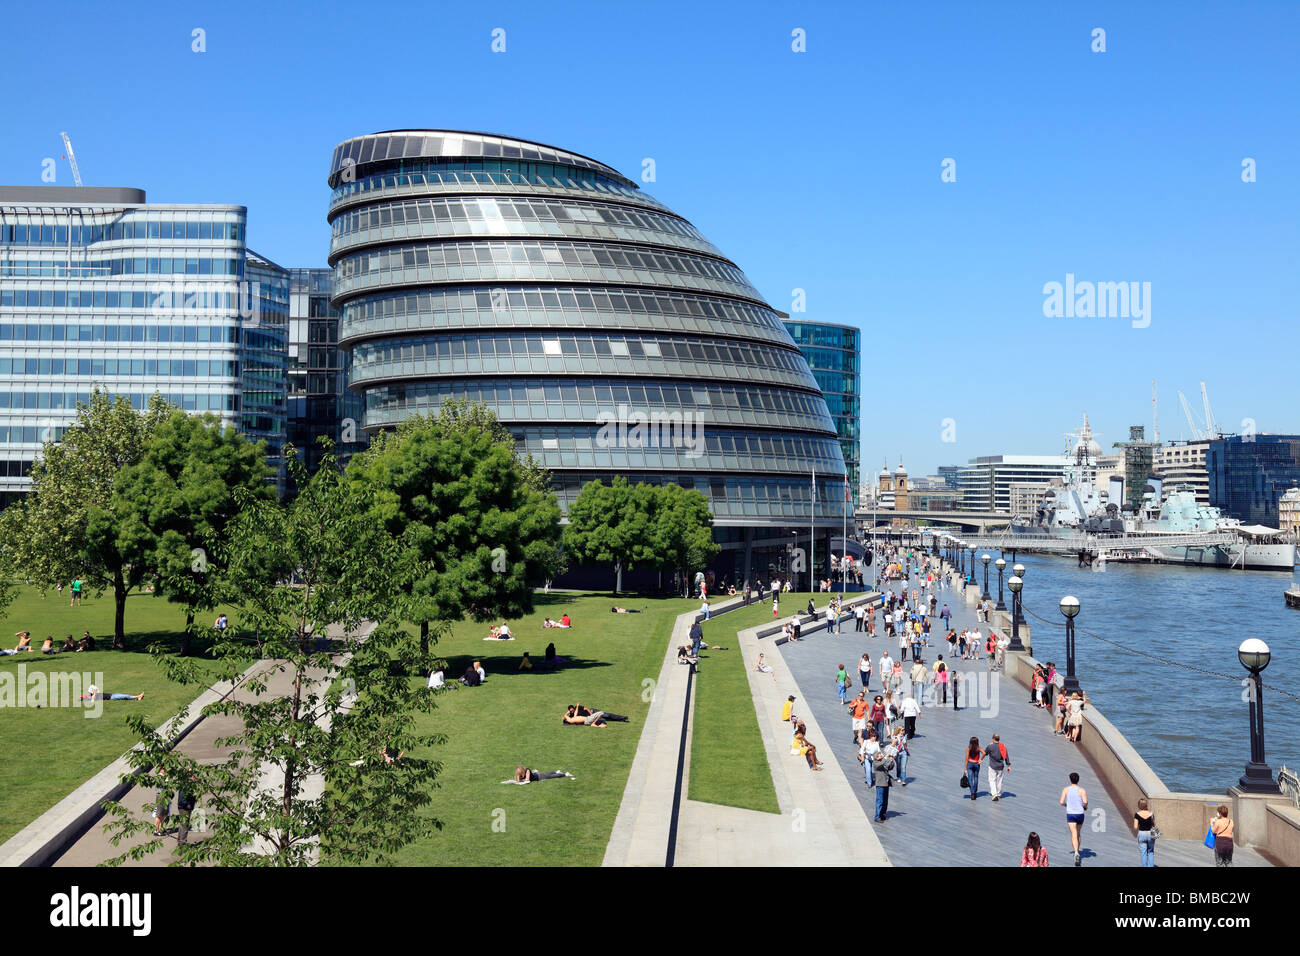 City Hall  London the headquarters for the Greater London Authority (GLA) and the Mayor of London. - Stock Image